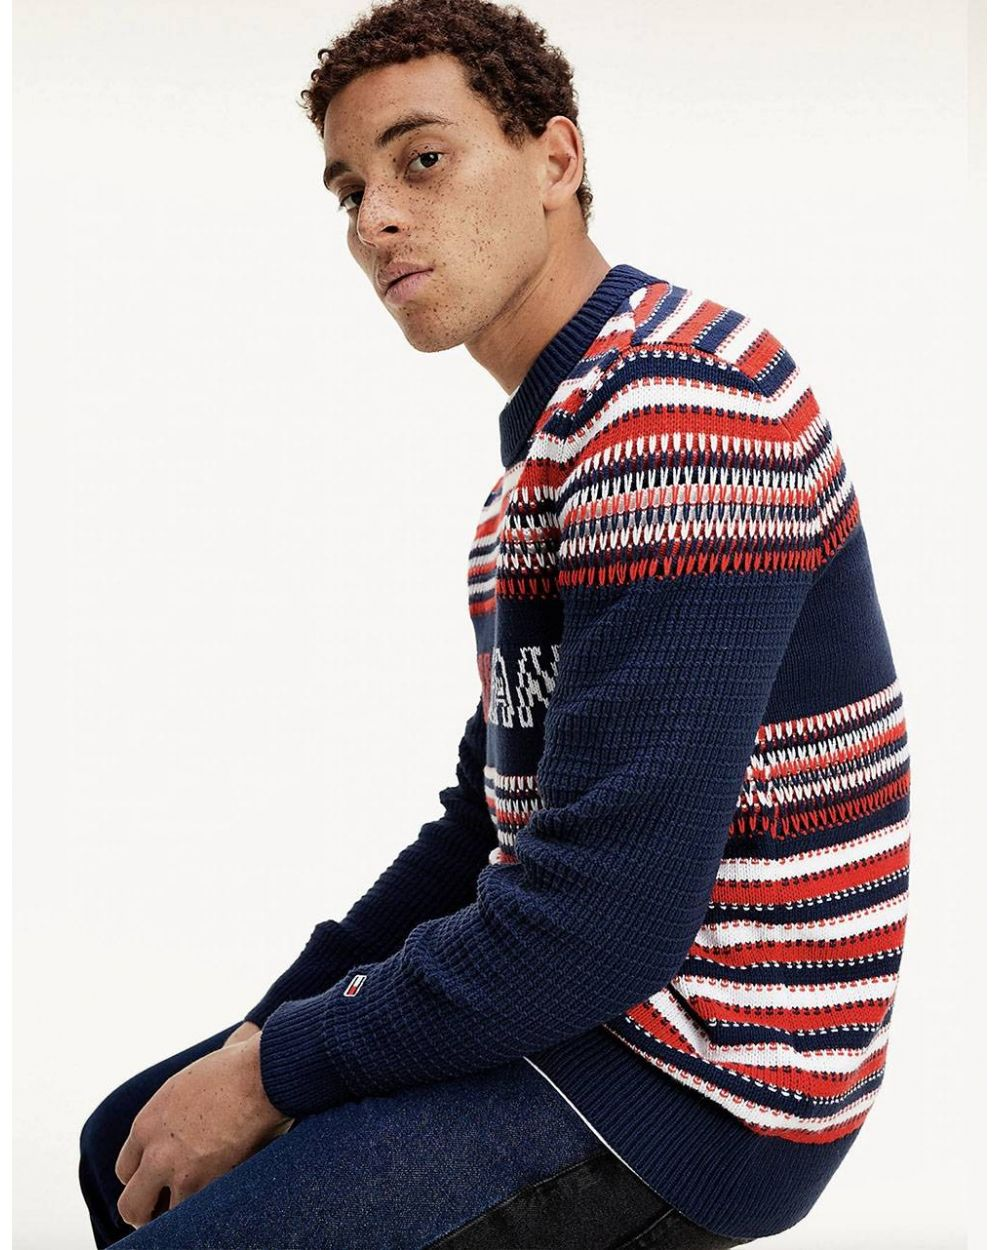 Tommy Jeans Structure mix knit sweater - navy/multi Tommy Jeans Knitwear 132,00 €